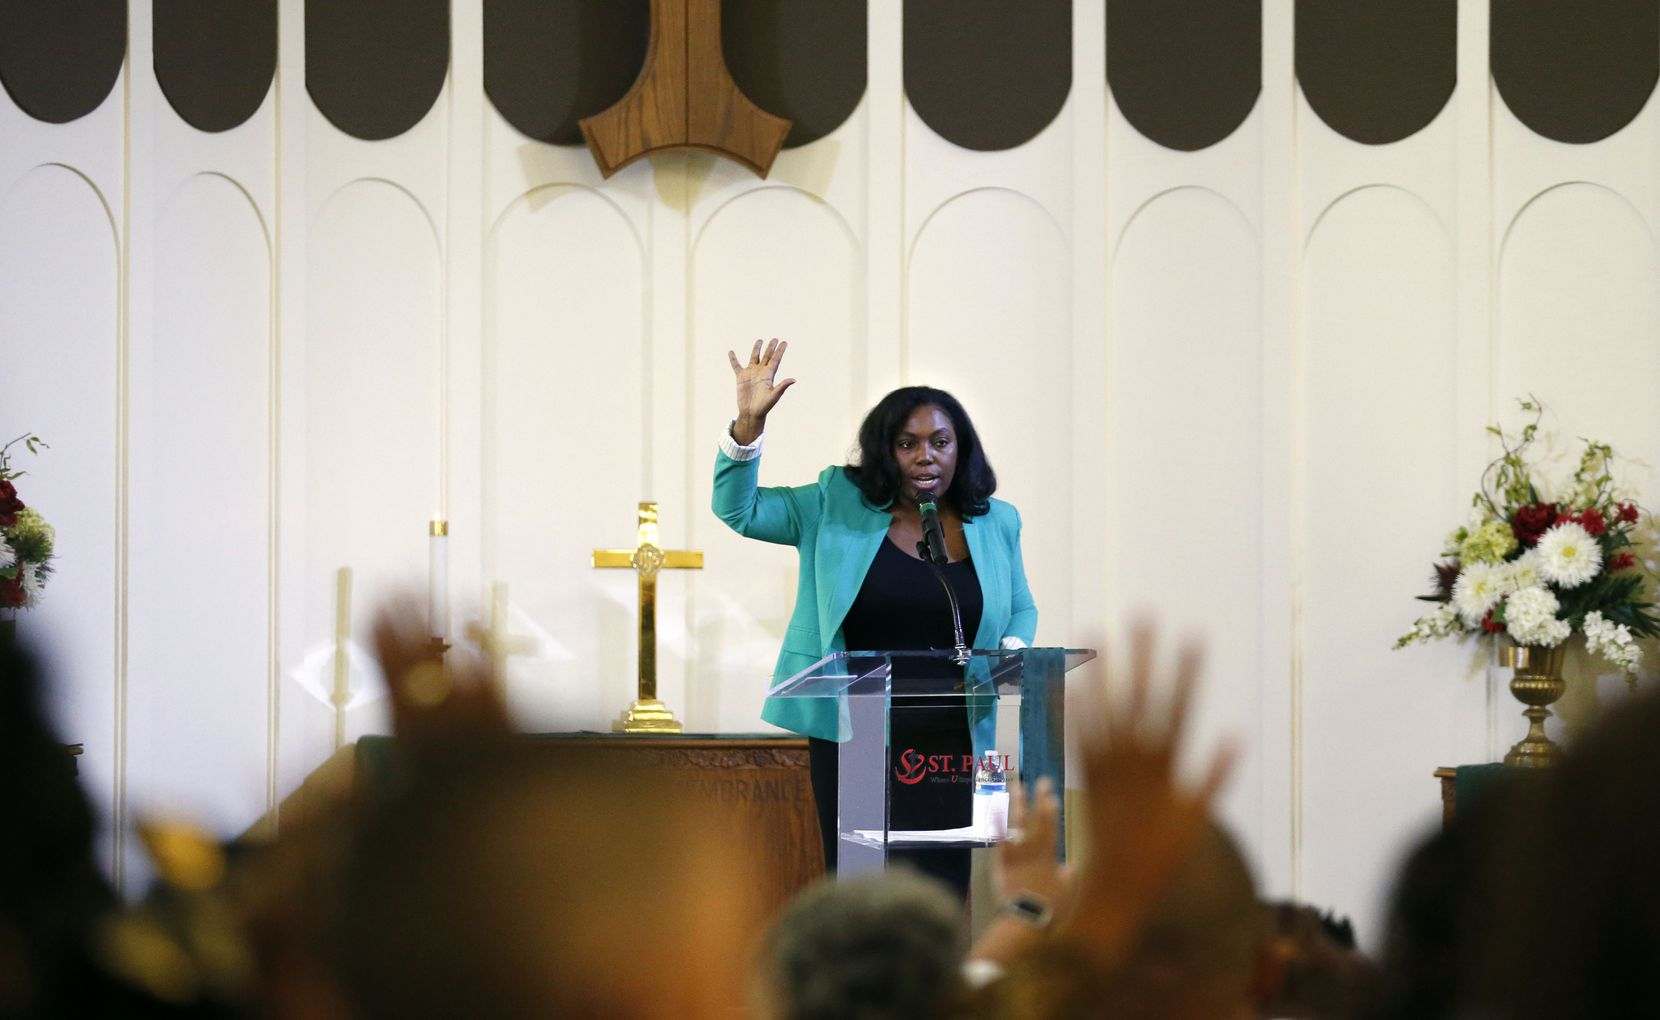 Frances Waters speaks to the congregation at St. Paul United Methodist Church in Dallas. (Vernon Bryant/Staff Photographer)